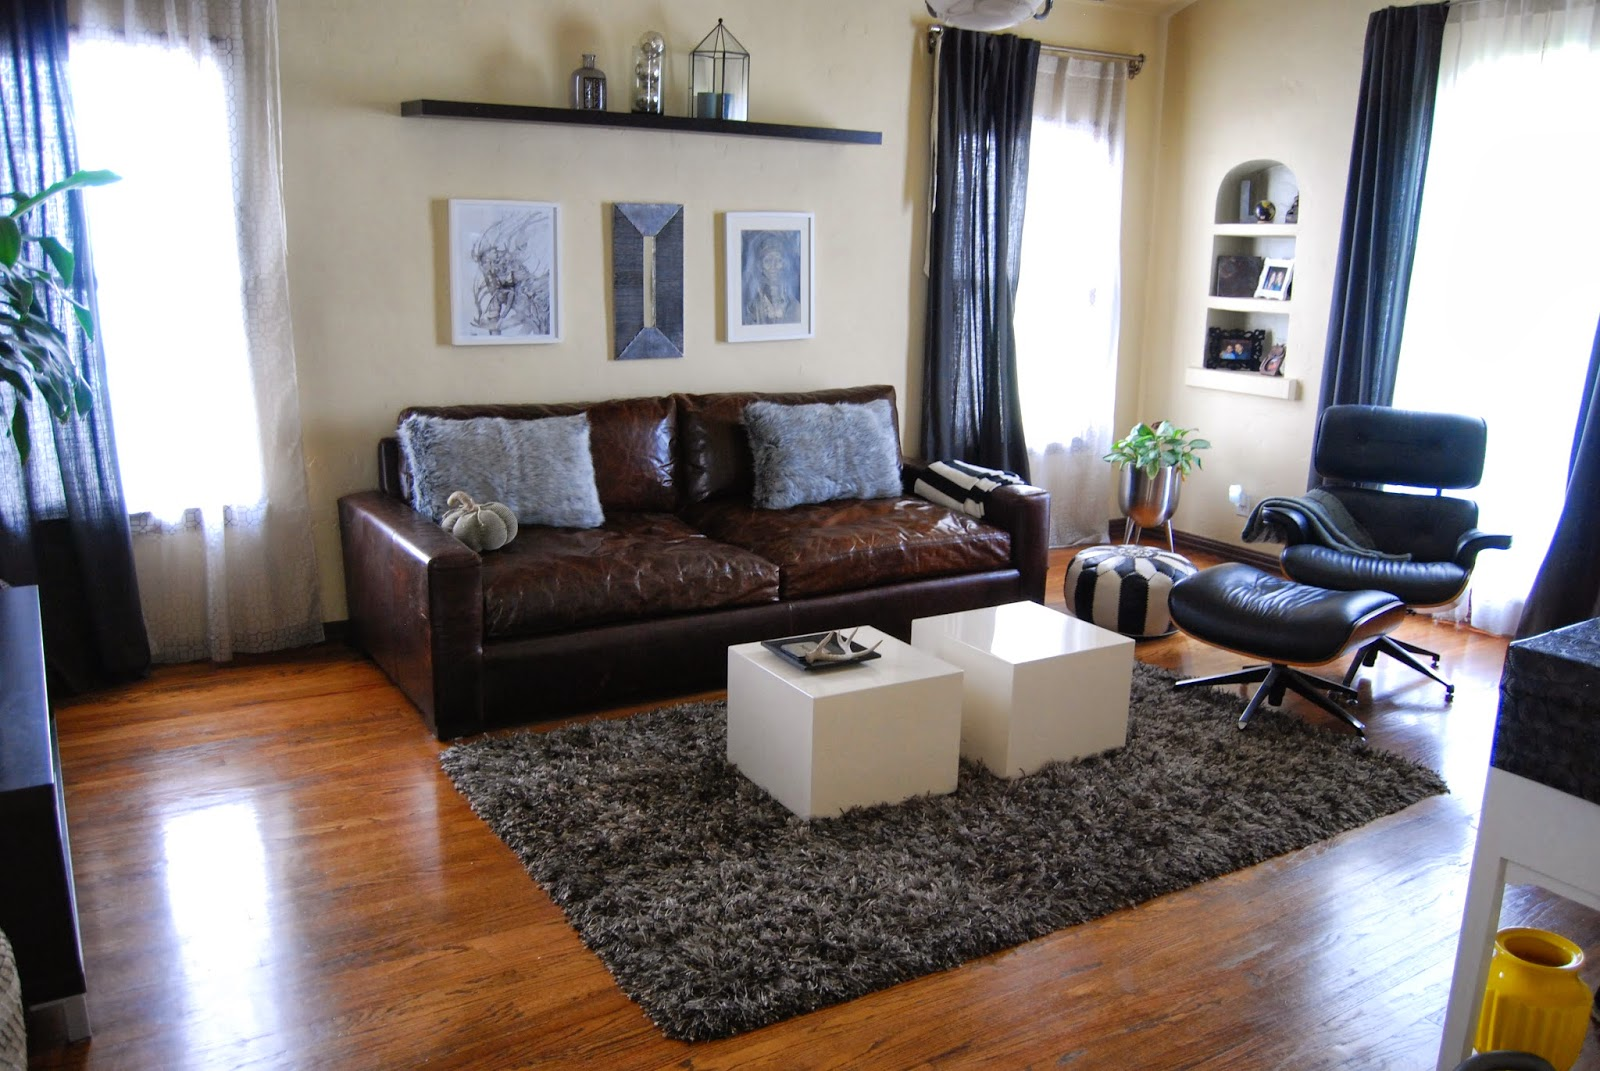 http://abeautynerd.blogspot.com/2013/10/transforming-living-room-part-2.html